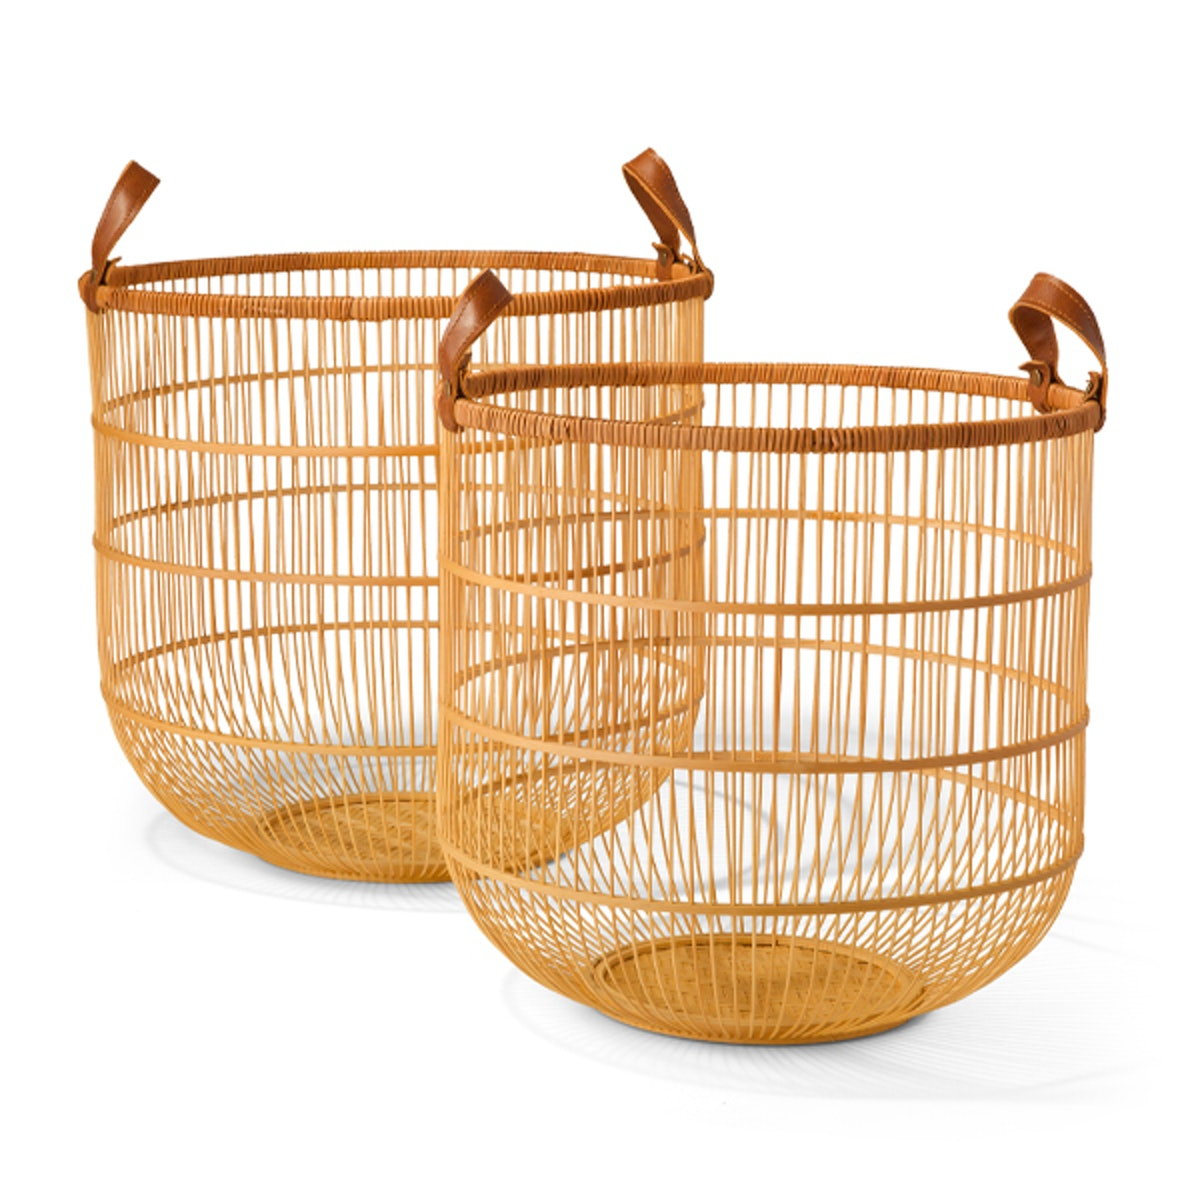 Bamboo Basket with Faux Leather Handle